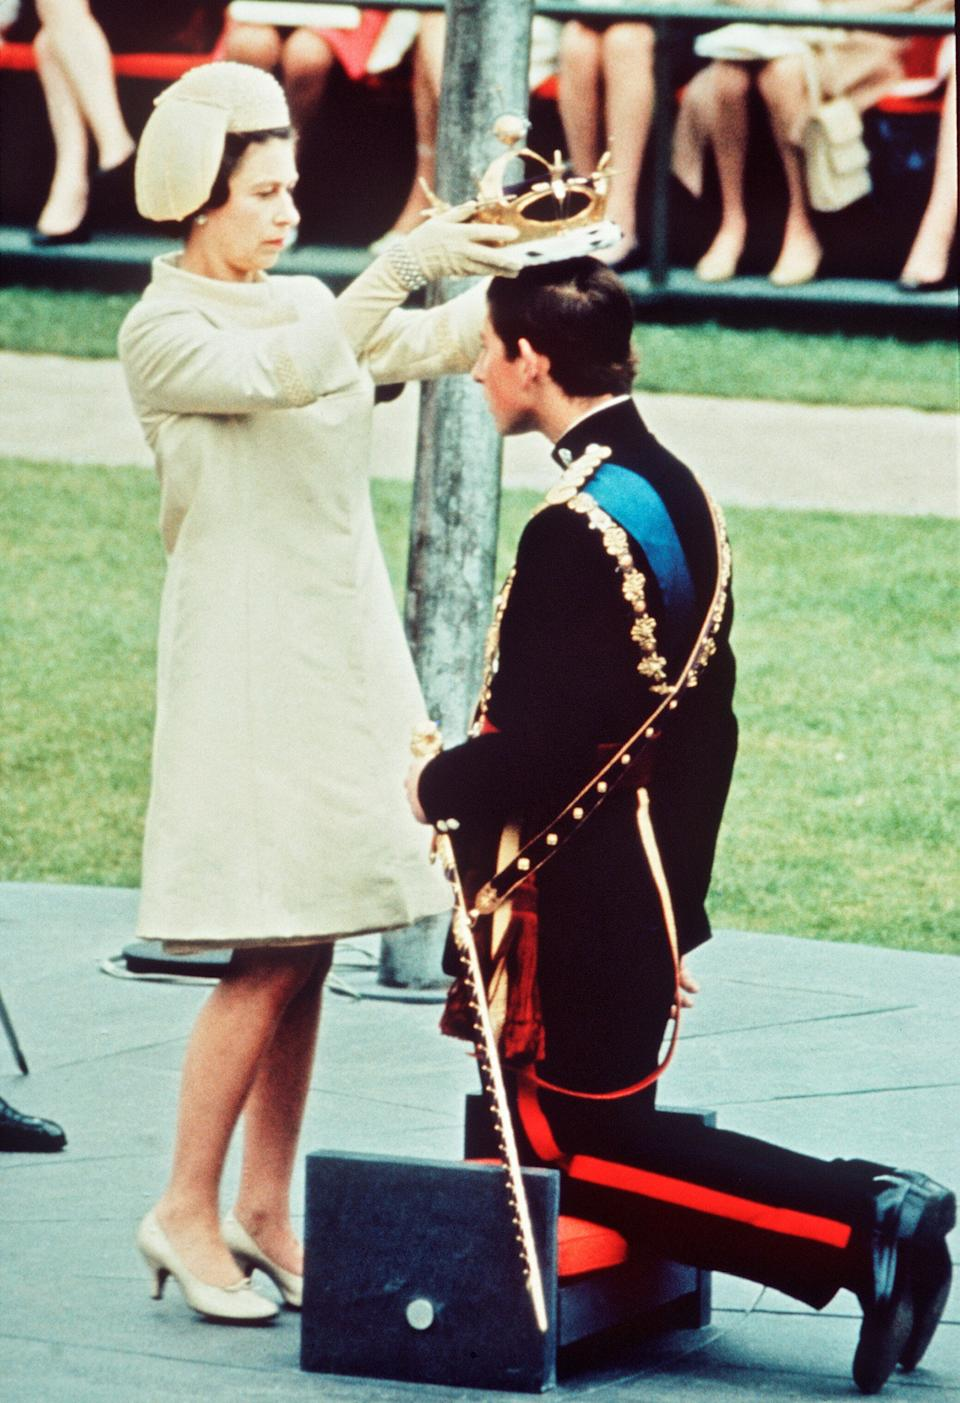 The Investiture of The Prince of Wales at Caernarvon Castle on July 1,1969. Prince Charles kneels before Queen Elizabeth as she places the coronet on his head.